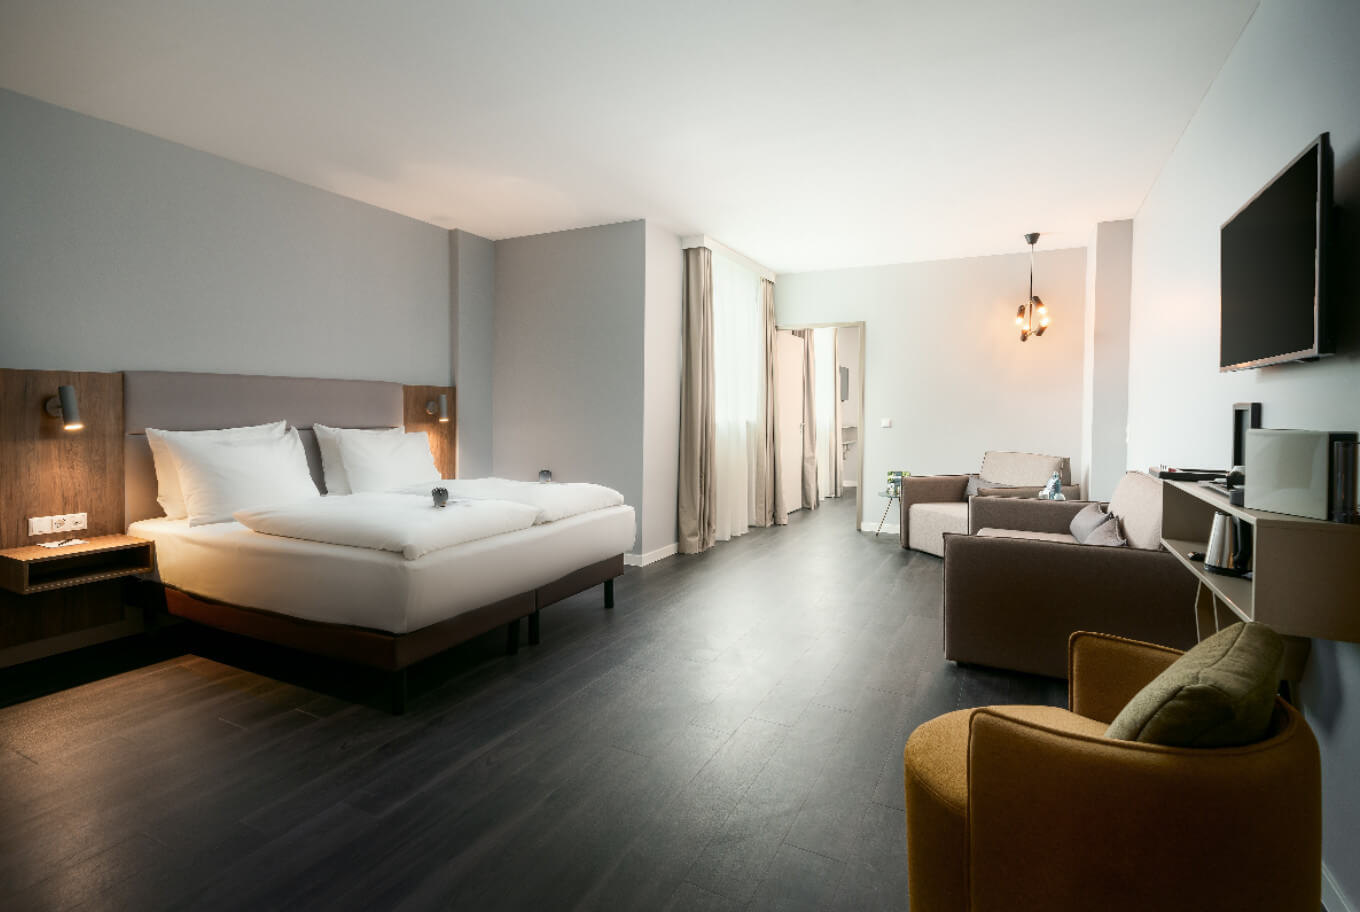 Spend the night in one of our suites at our hotel in Oberhausen.